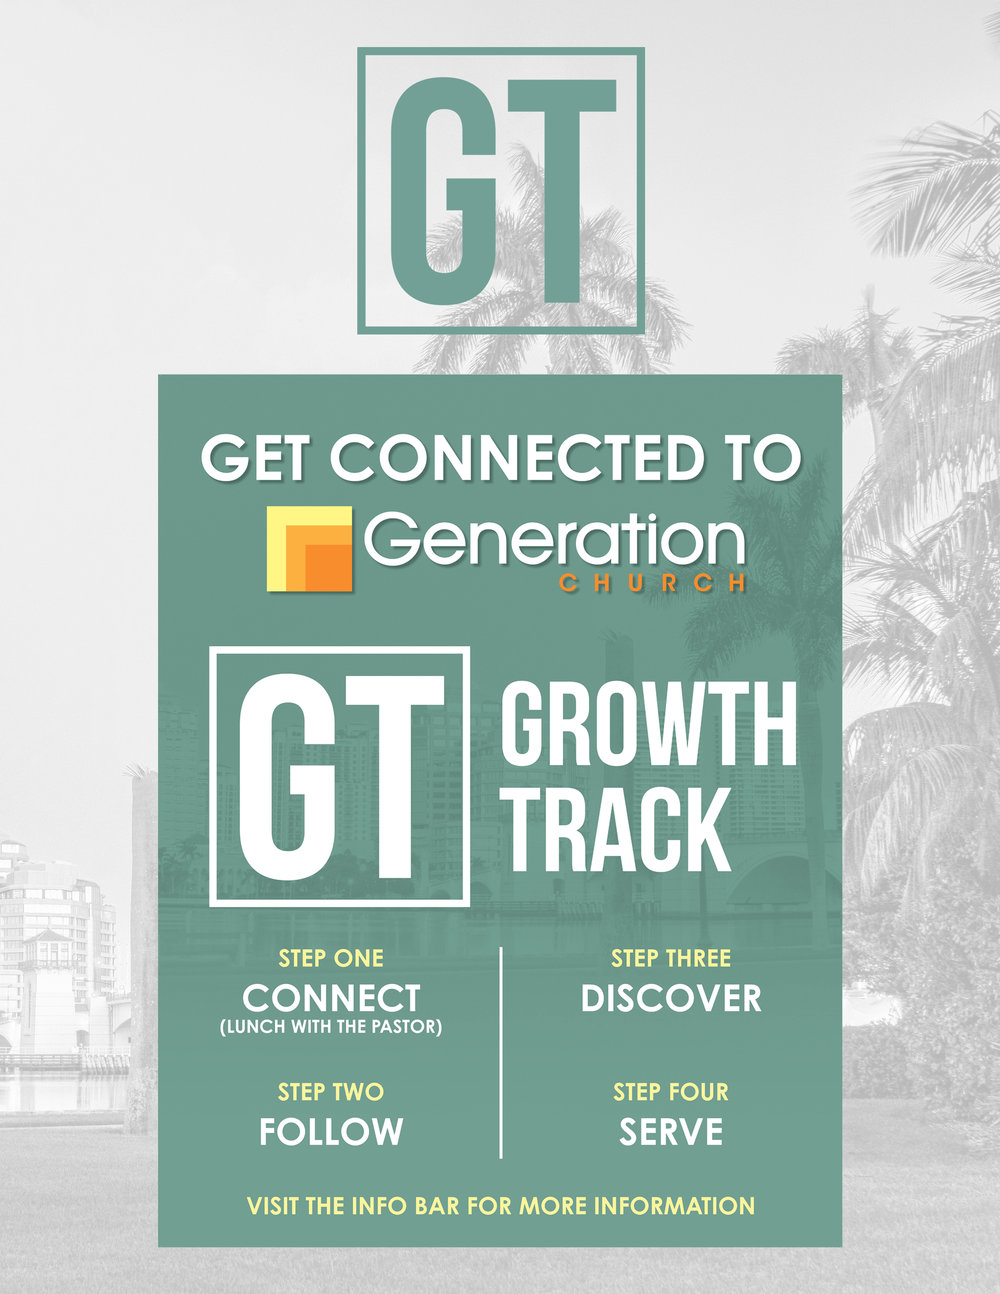 Growth Track Signage